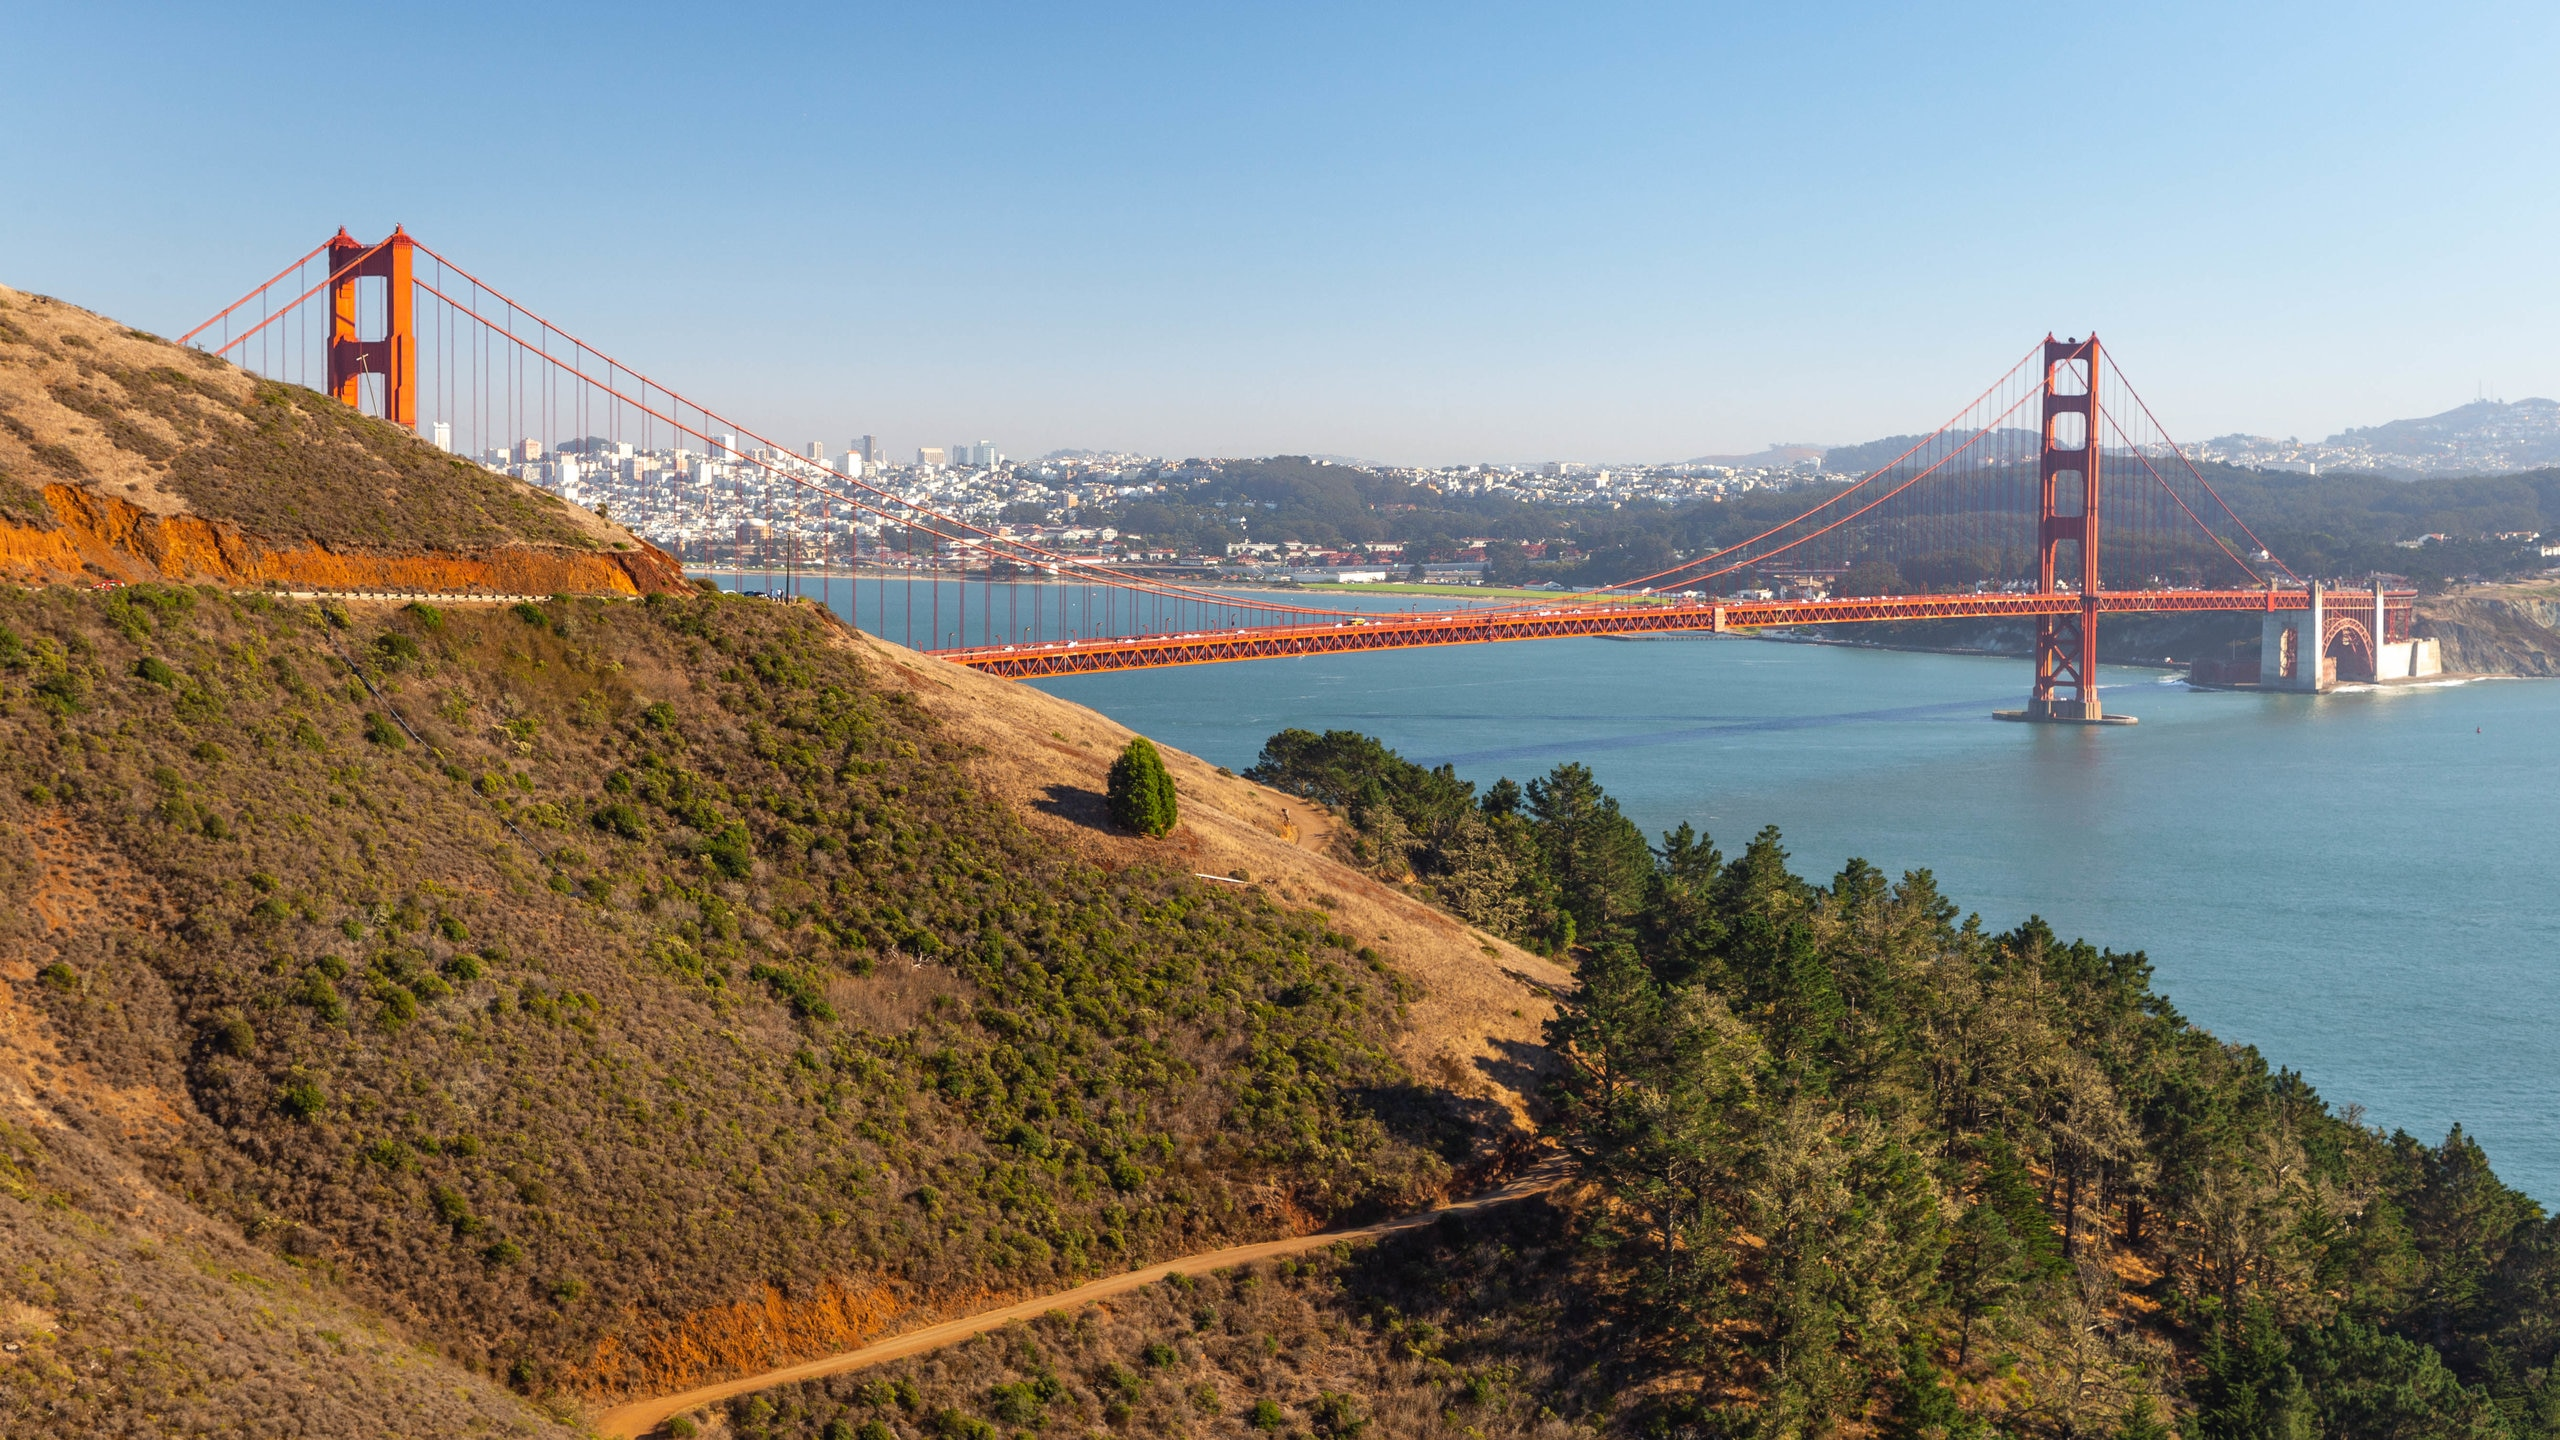 Sunset District, San Francisco, California, United States of America